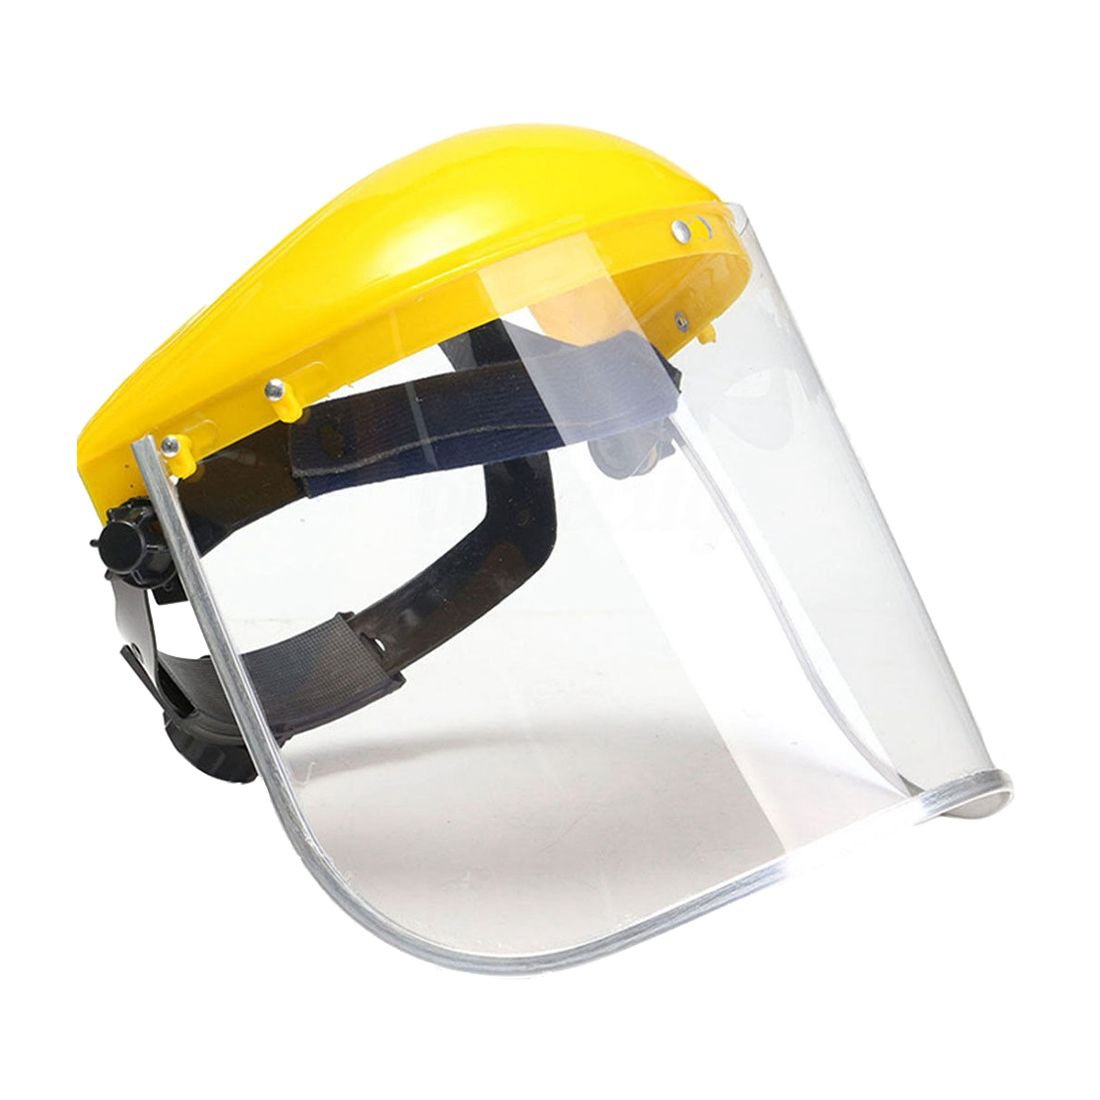 SODIAL(R) 1x Clear Safety Grinding Face Shield Screen Mask For Visors Eye Face Protection